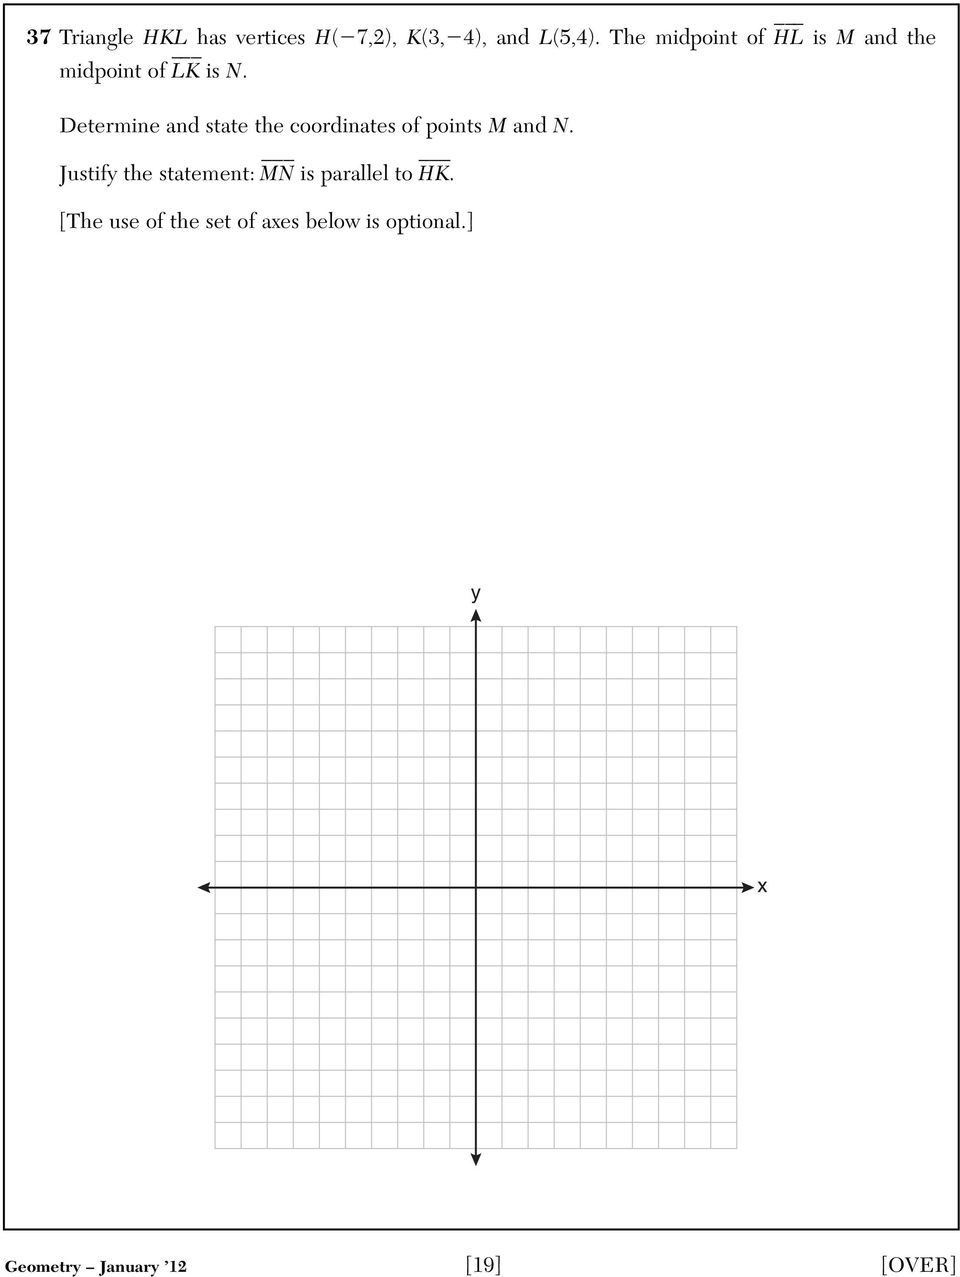 Determine and state the coordinates of points M and N.